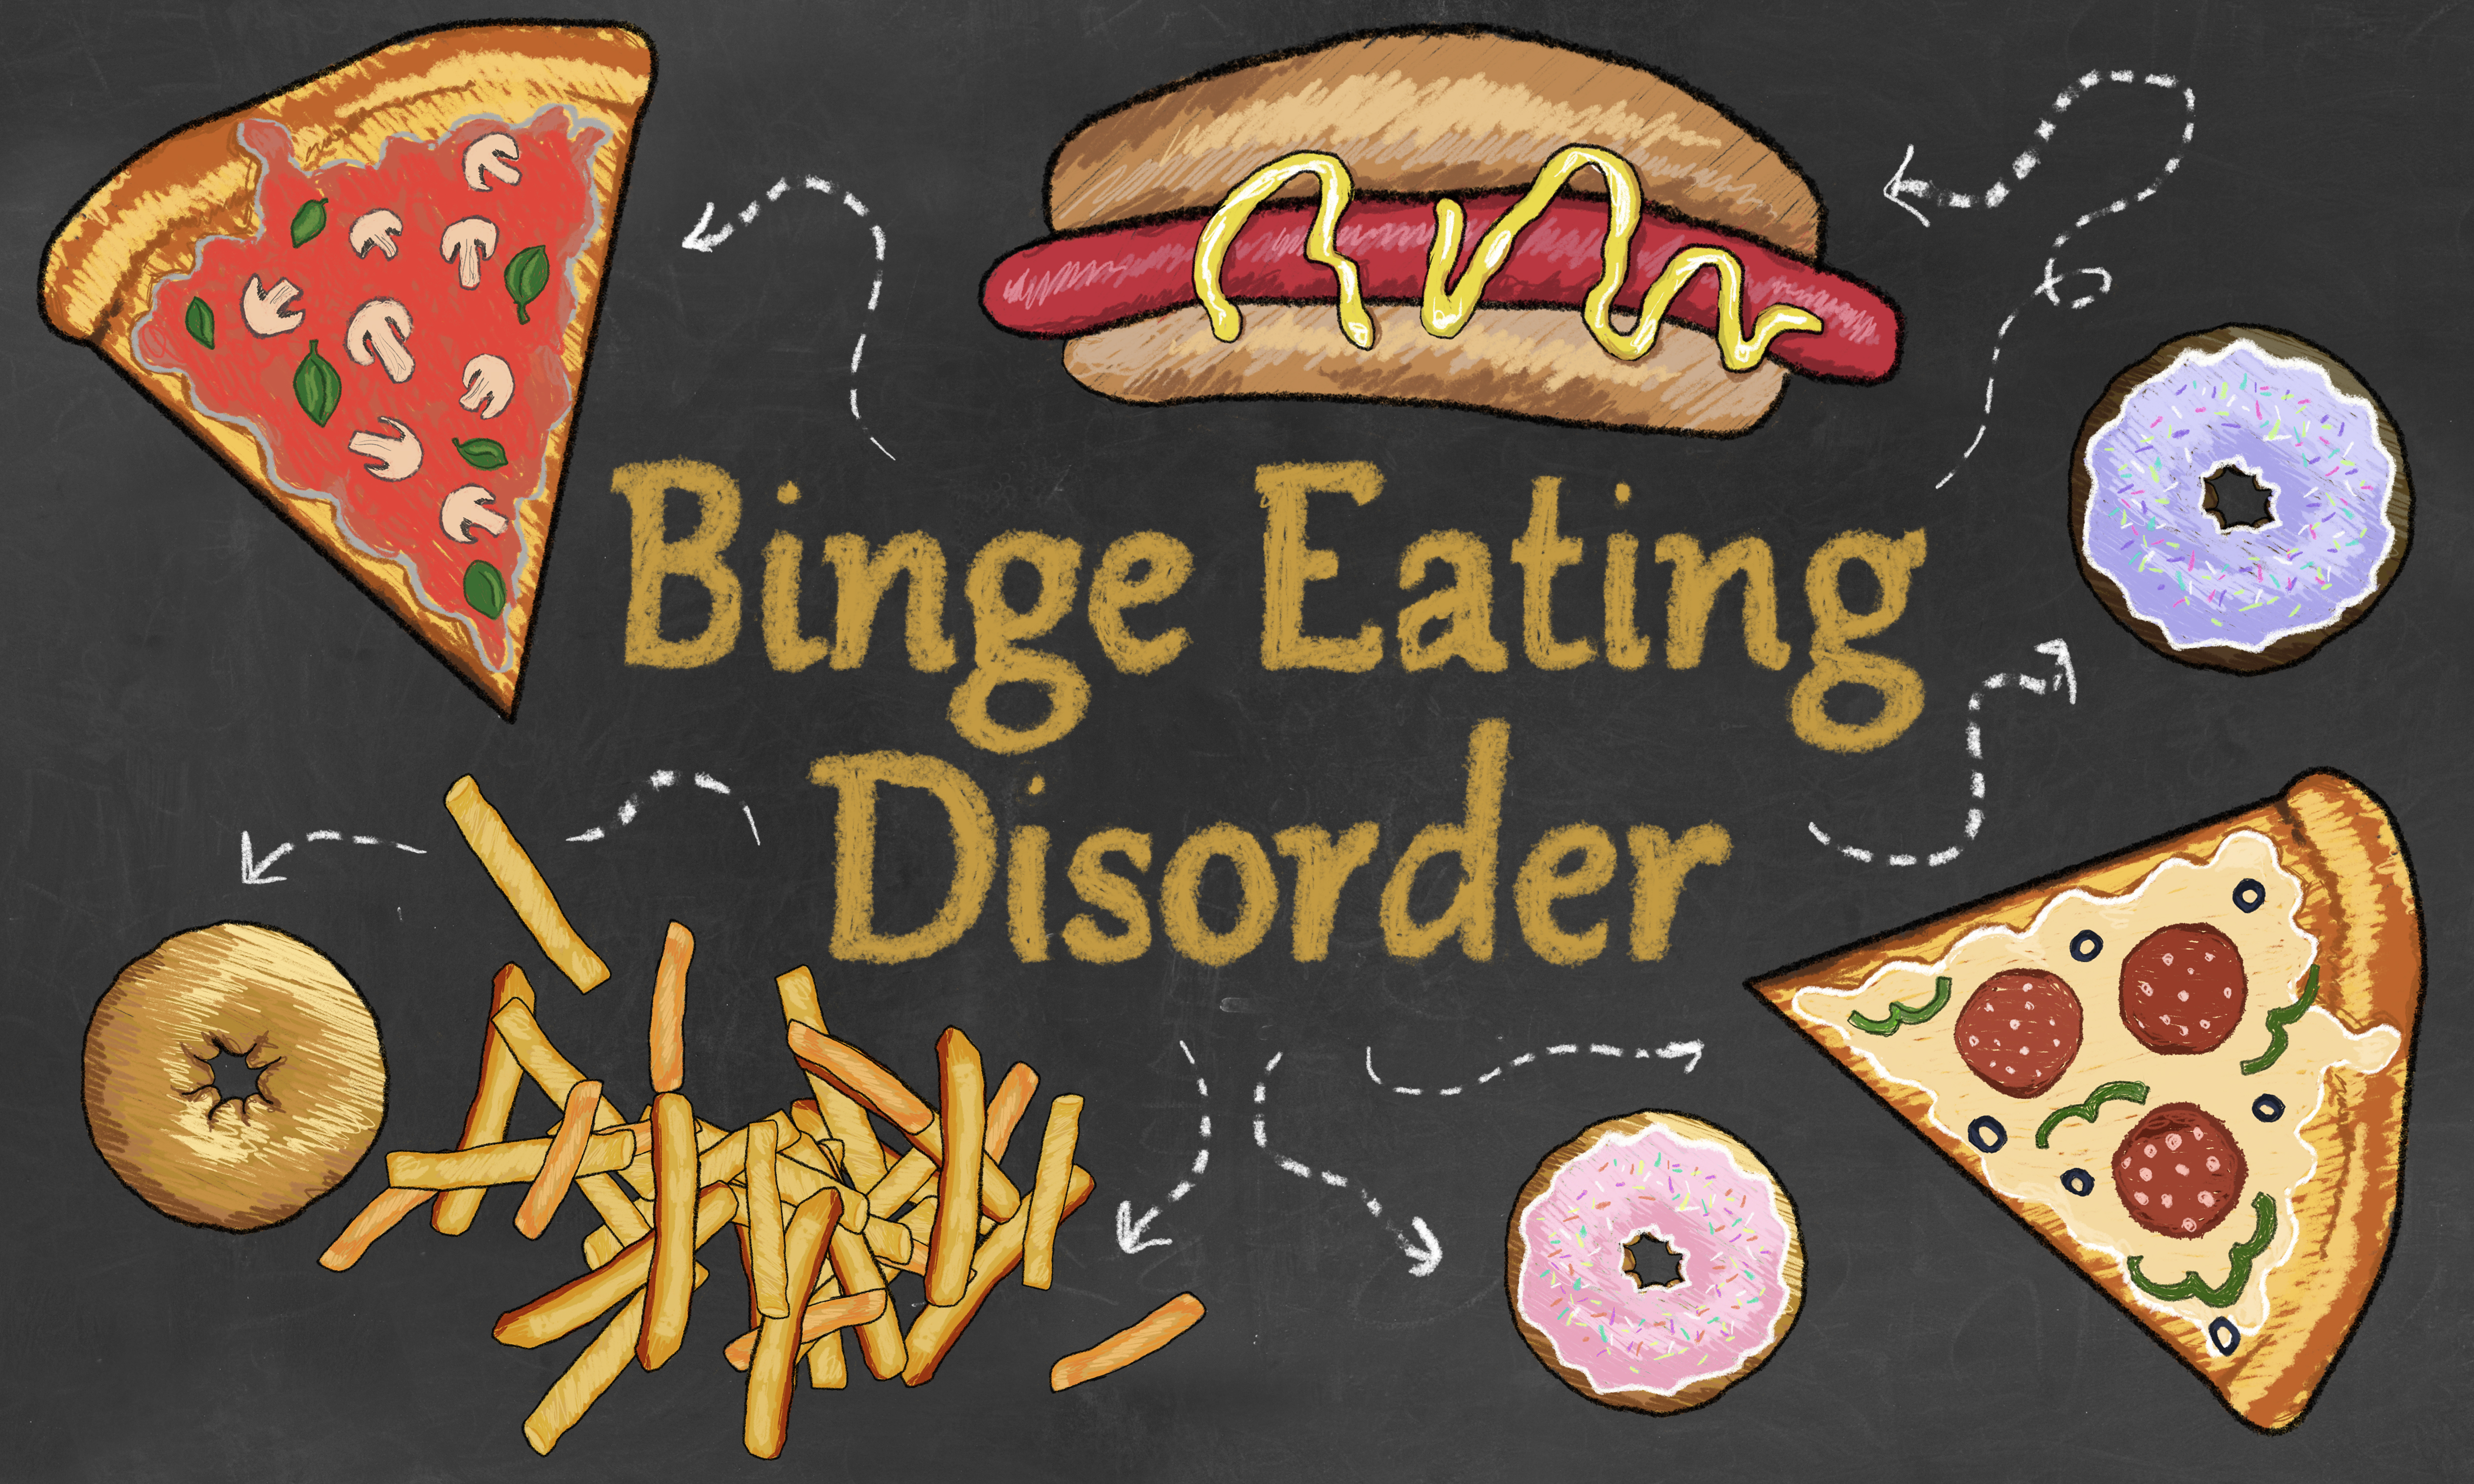 Binge Eating Disorder illustrated with Junk Food such as Pizza, French Fries and Hot Dog